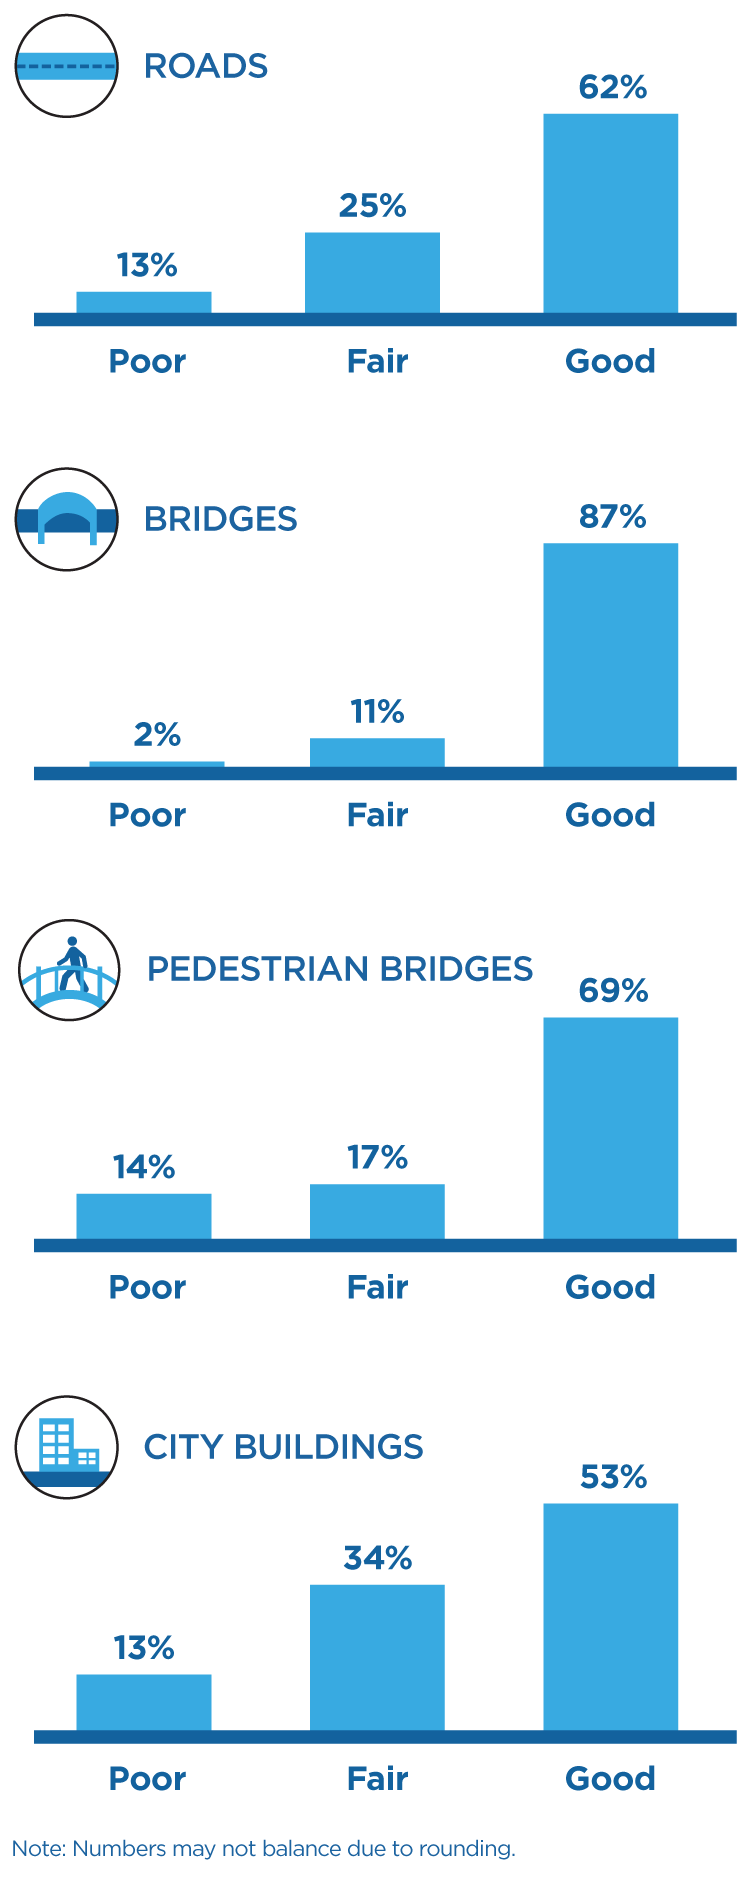 Bar graph describing the Mississauga's roads, bridges and buildings infrastructure maintenance pedestrian bridges. Thirteen percent of the roads are rated poor, 25% fair and 62% good. Two percent of bridges are poor, 11% fair and 87% good. Thirteen percent of buildings are poor, 34% fair and 53% good. Sixty-nine of pedestrian bridges good, 17% bridges fair and 14% are poor.